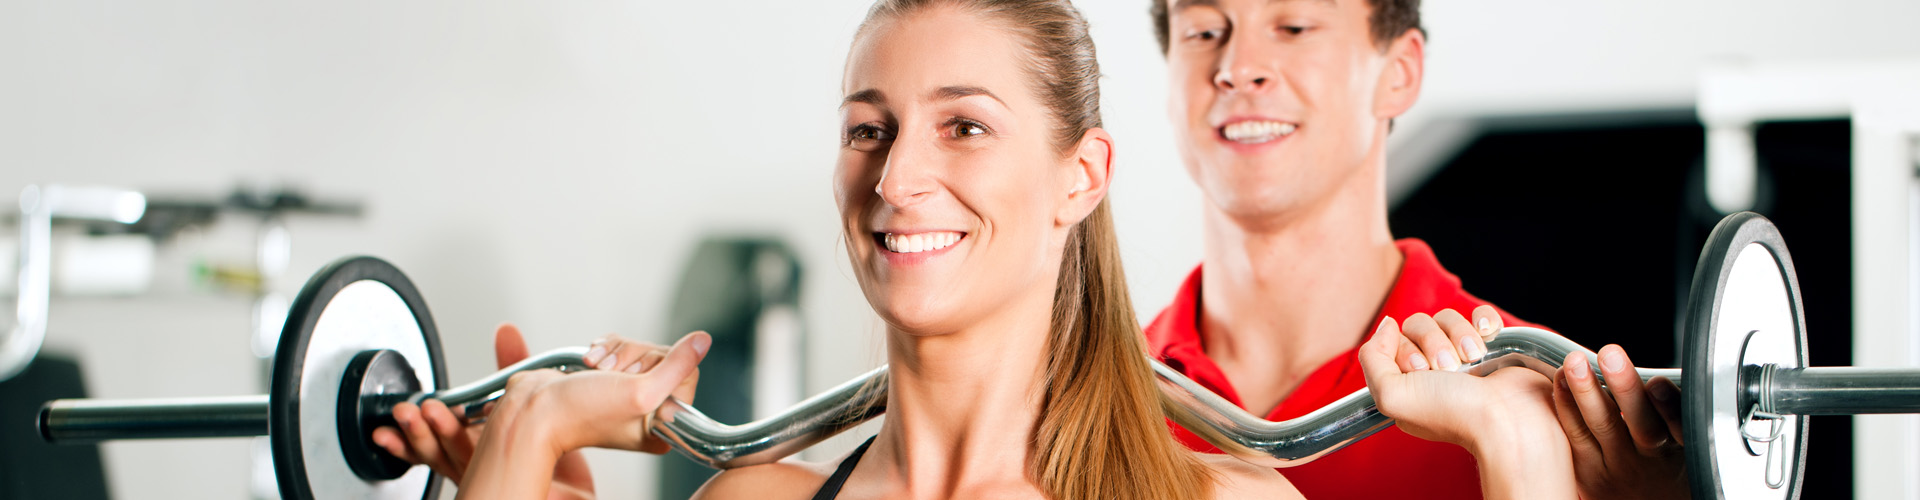 Personal training courses from Fit2Train